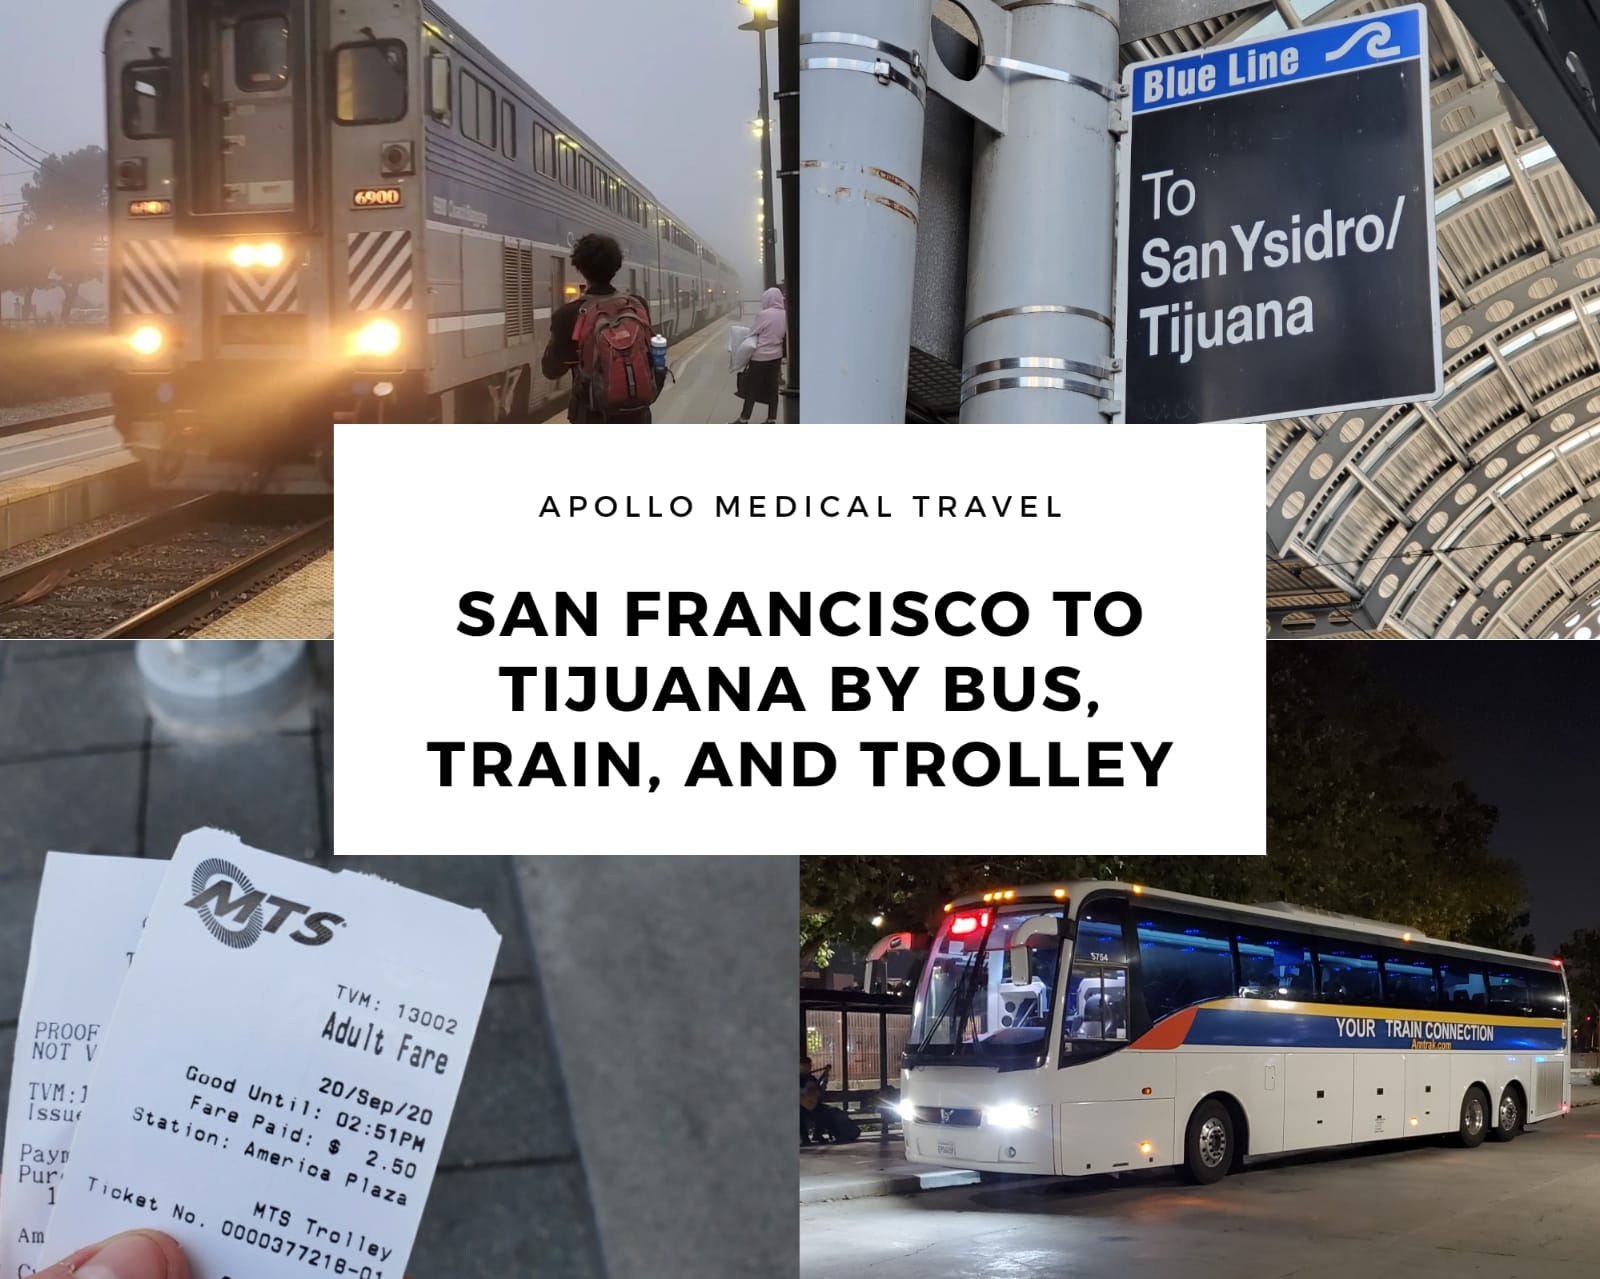 San Francisco to Tijuana by Bus, Train, and Trolley